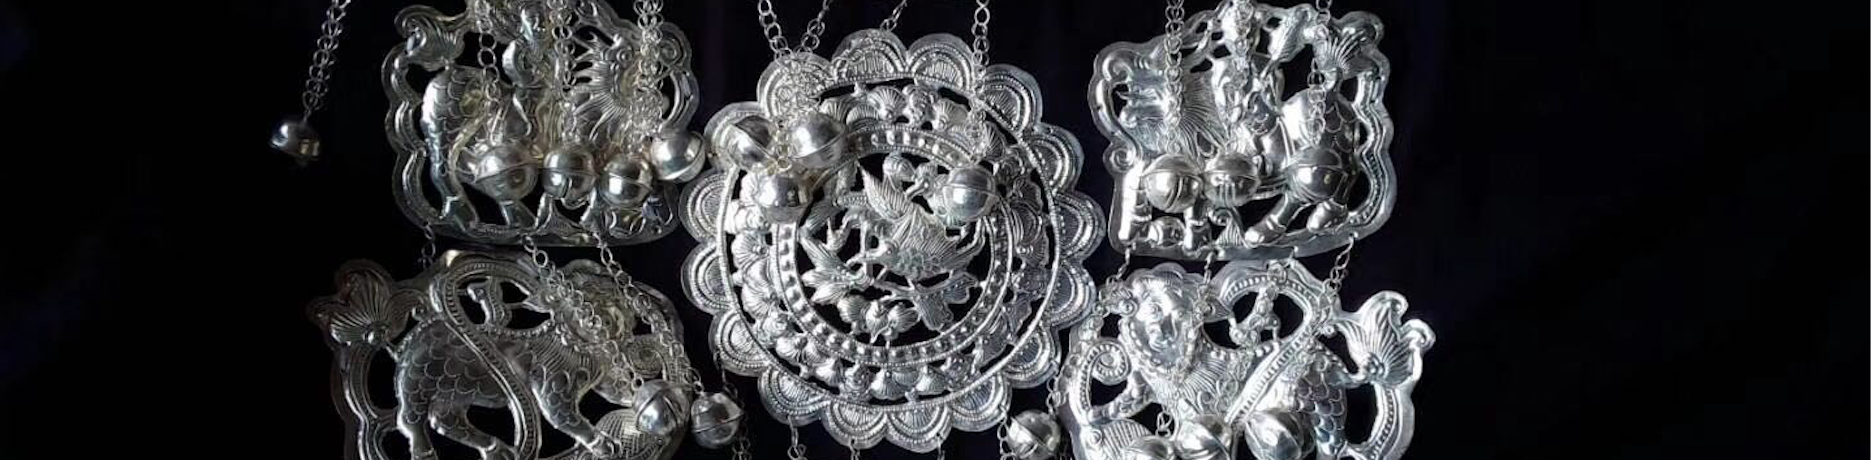 A piece of Asian filigree created by silversmiths in the Chinese Kongbai Village.